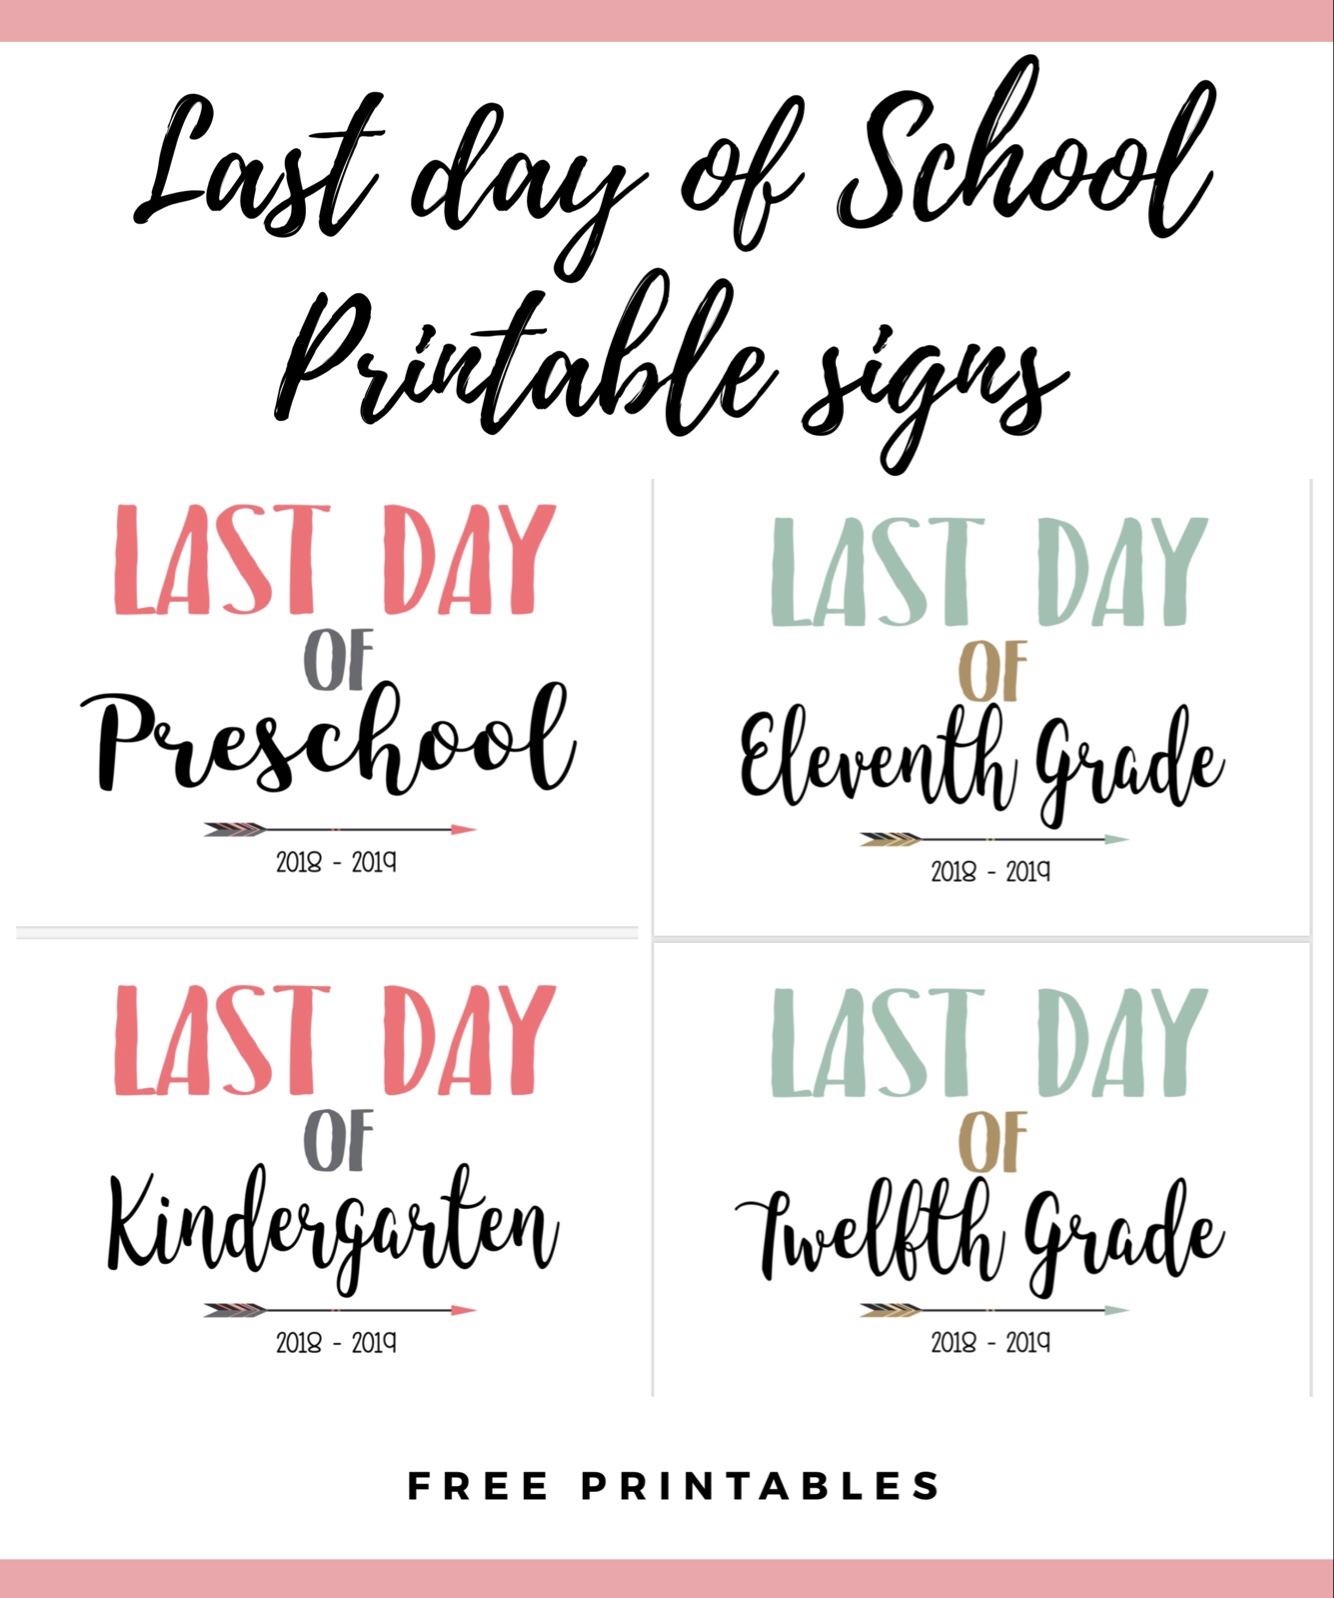 picture relating to Last Day of School Printable called Past Working day of University Printable Signs or symptoms Mama Endure Wooten